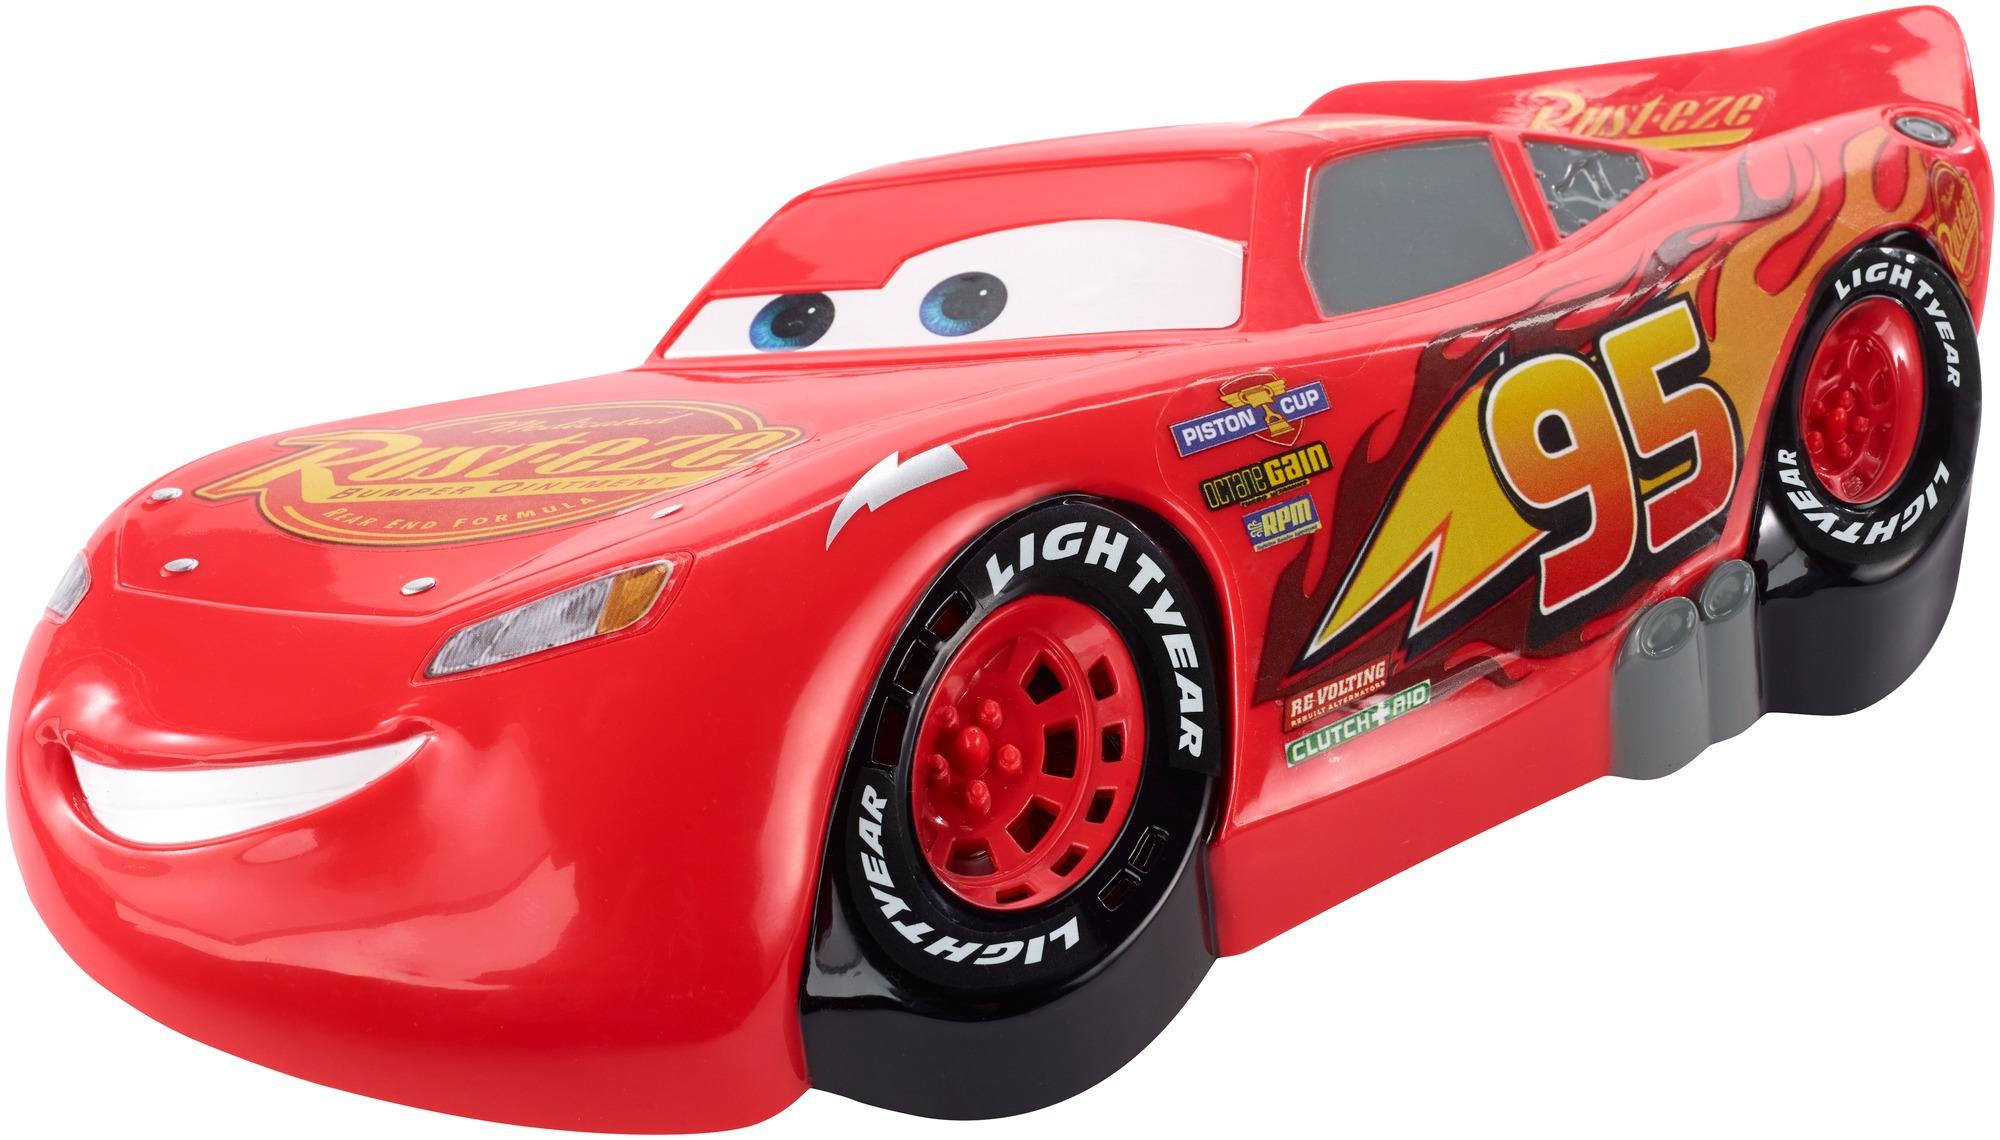 gas out disney pixar cars lightning mcqueen card game. Black Bedroom Furniture Sets. Home Design Ideas